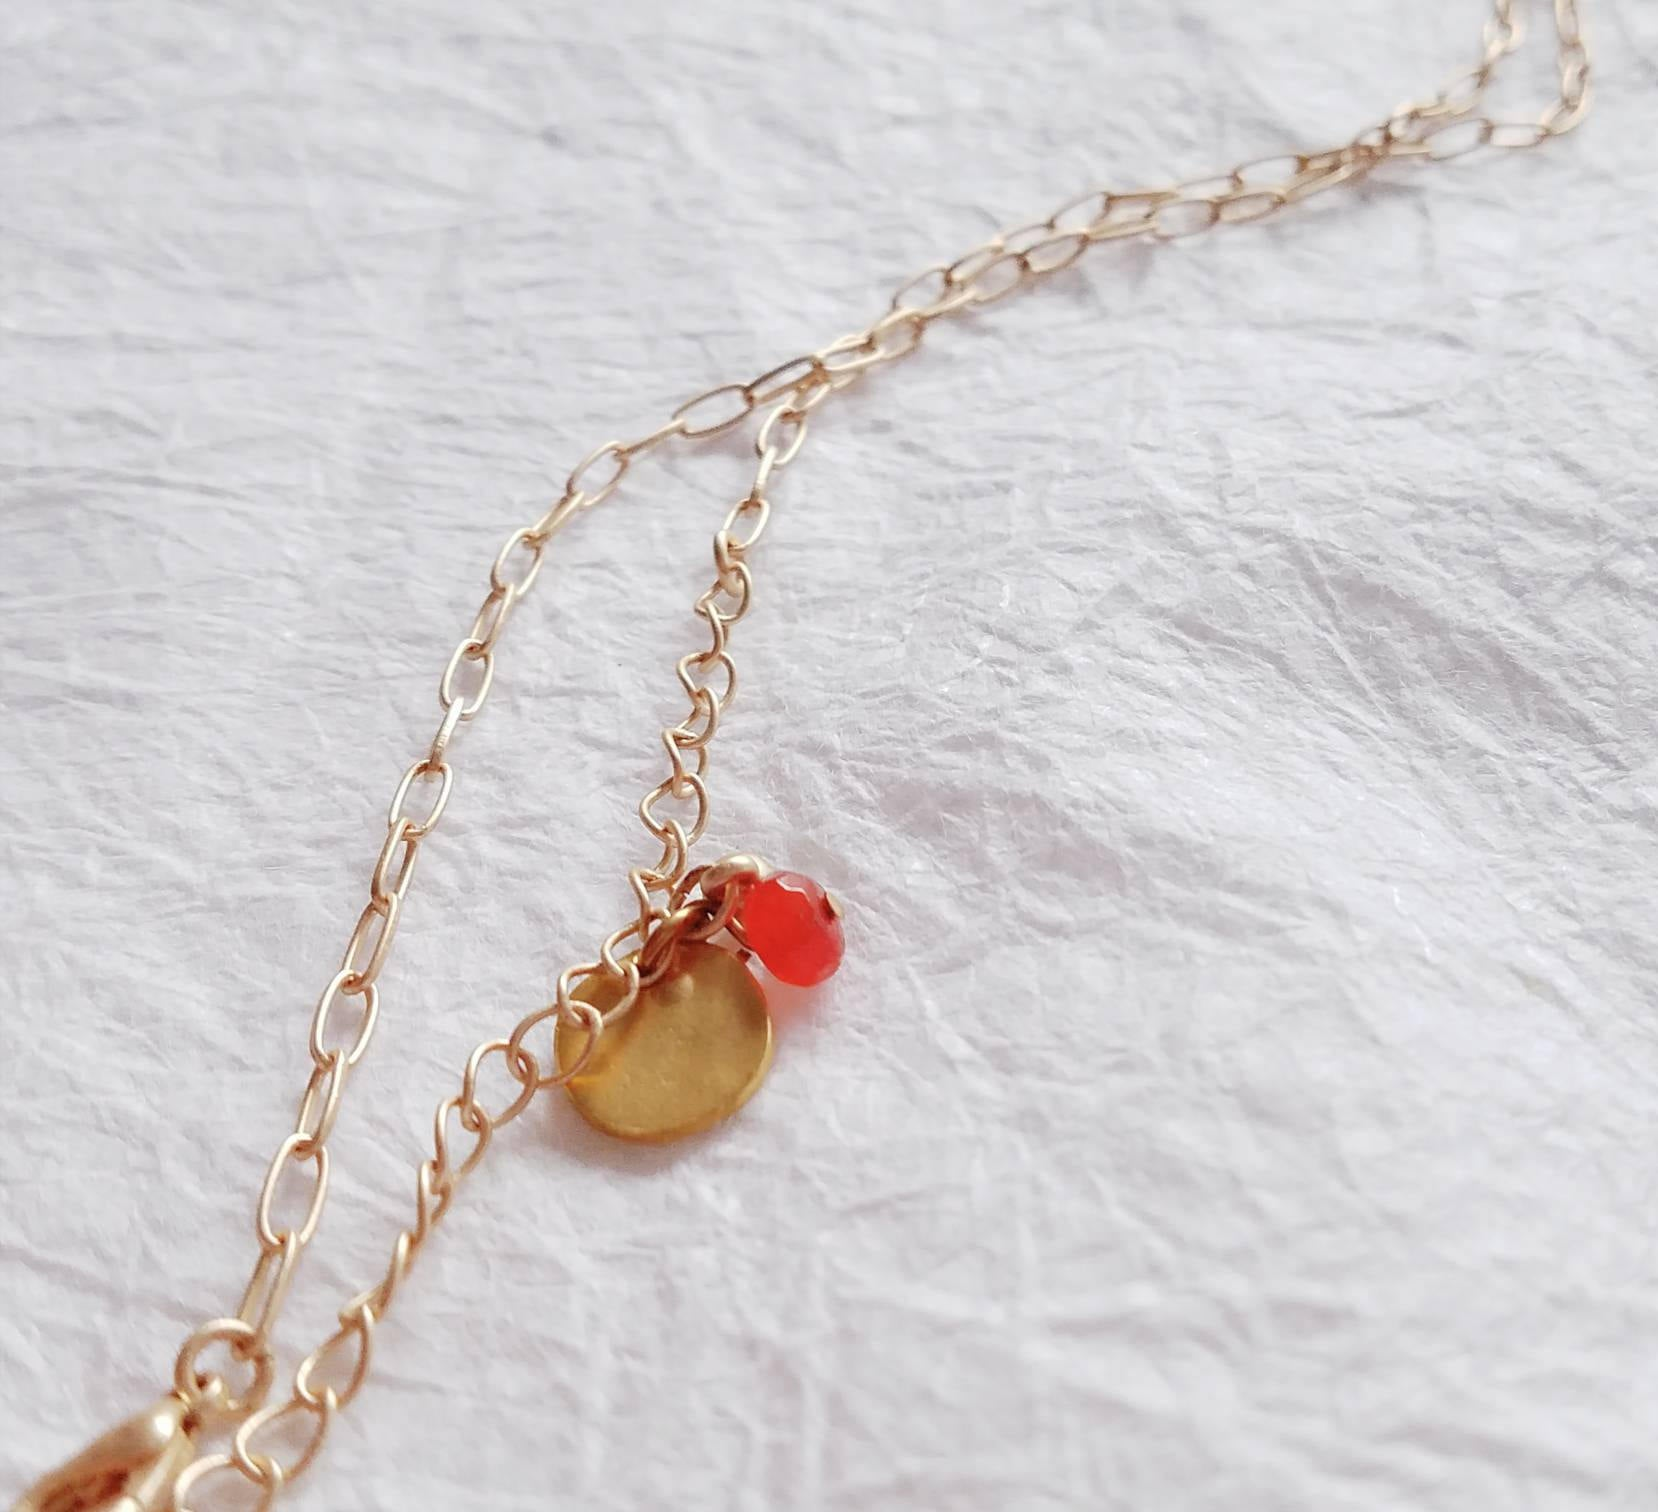 Inspirational Carnelian Rondelle Hope Charm Matte Goldtone Necklace, MB101726: Season of Hope